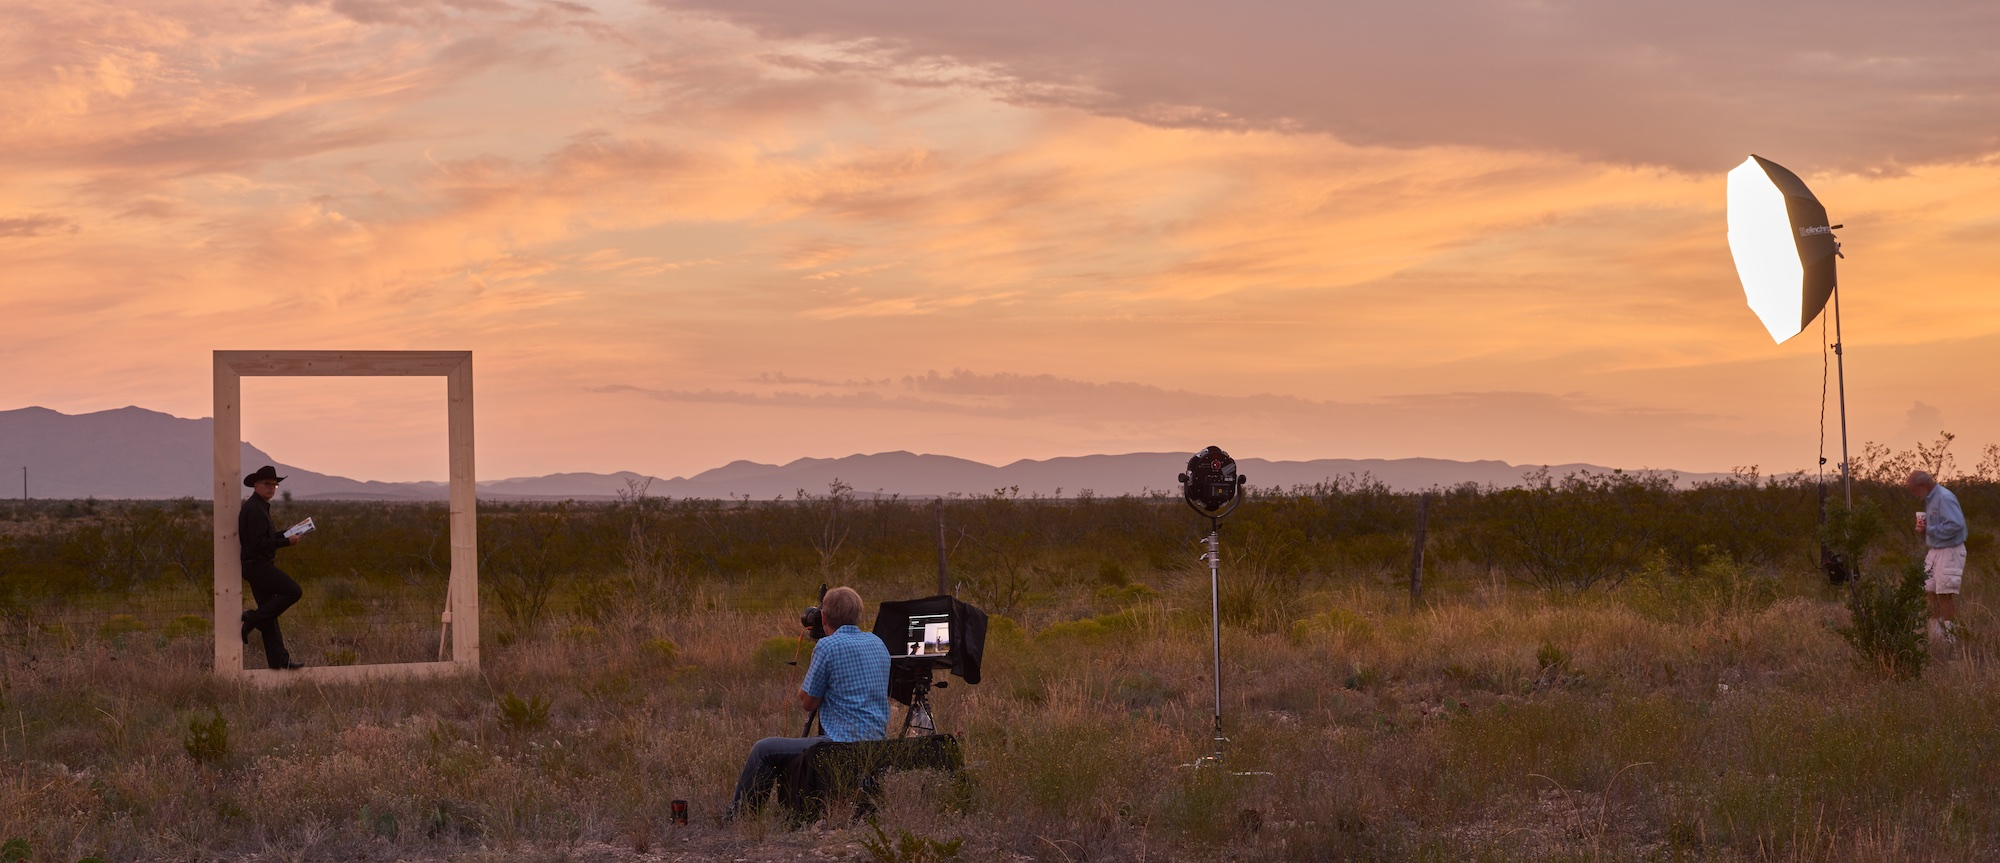 Sunrise shoot in Marathon, Texas. John photographing the portrait of DJ used for the film's promotion and opening and closing sequences. (Production photos courtesy of  James Evans )